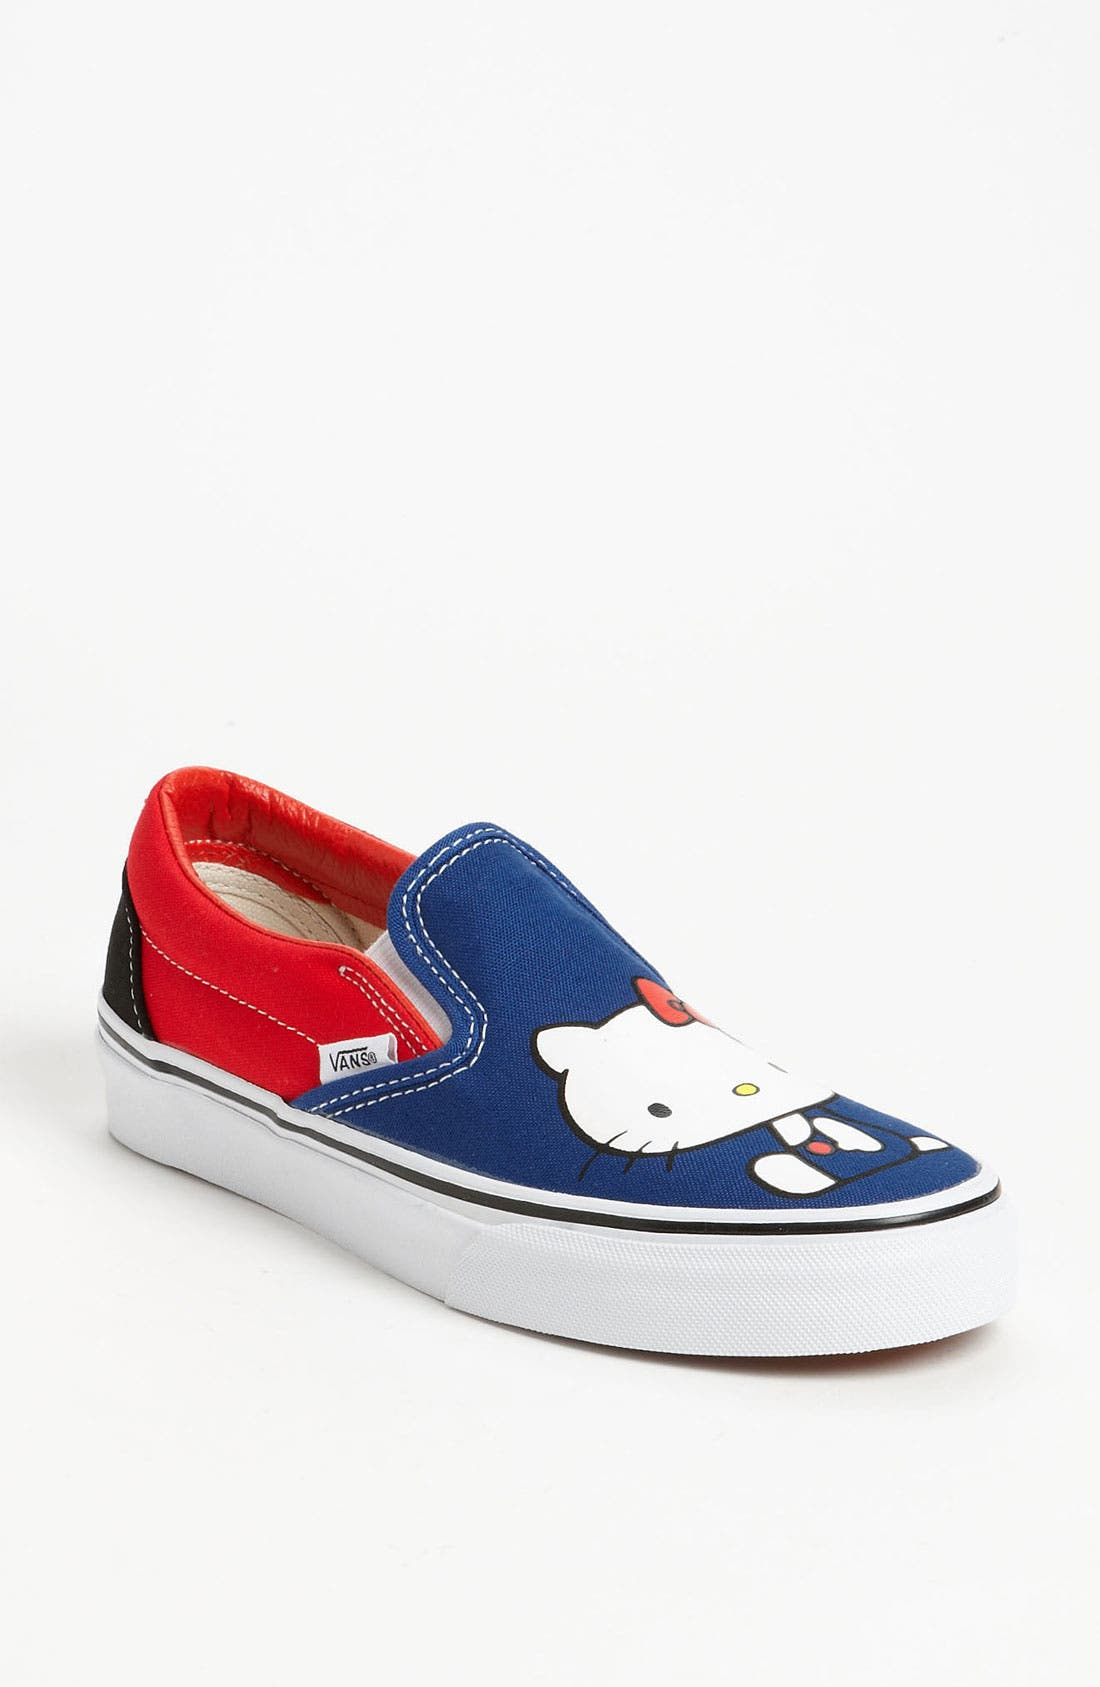 Alternate Image 1 Selected - Vans 'Classic - Hello Kitty®' Sneaker (Women)